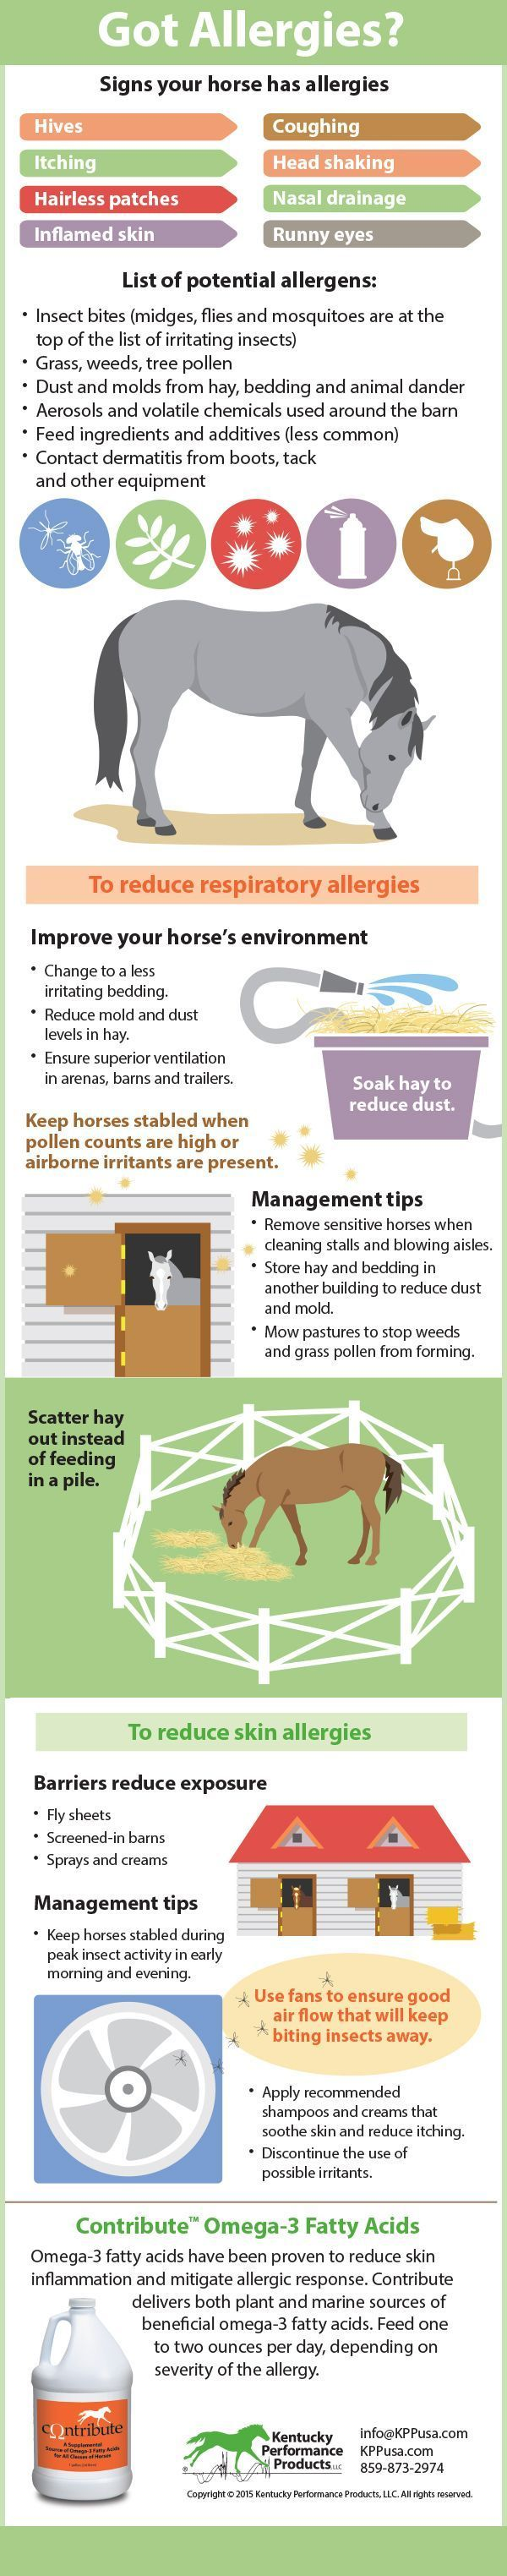 Does your horse have allergies? Here's an infographic with tips on how to reduce them.  #horsehealth